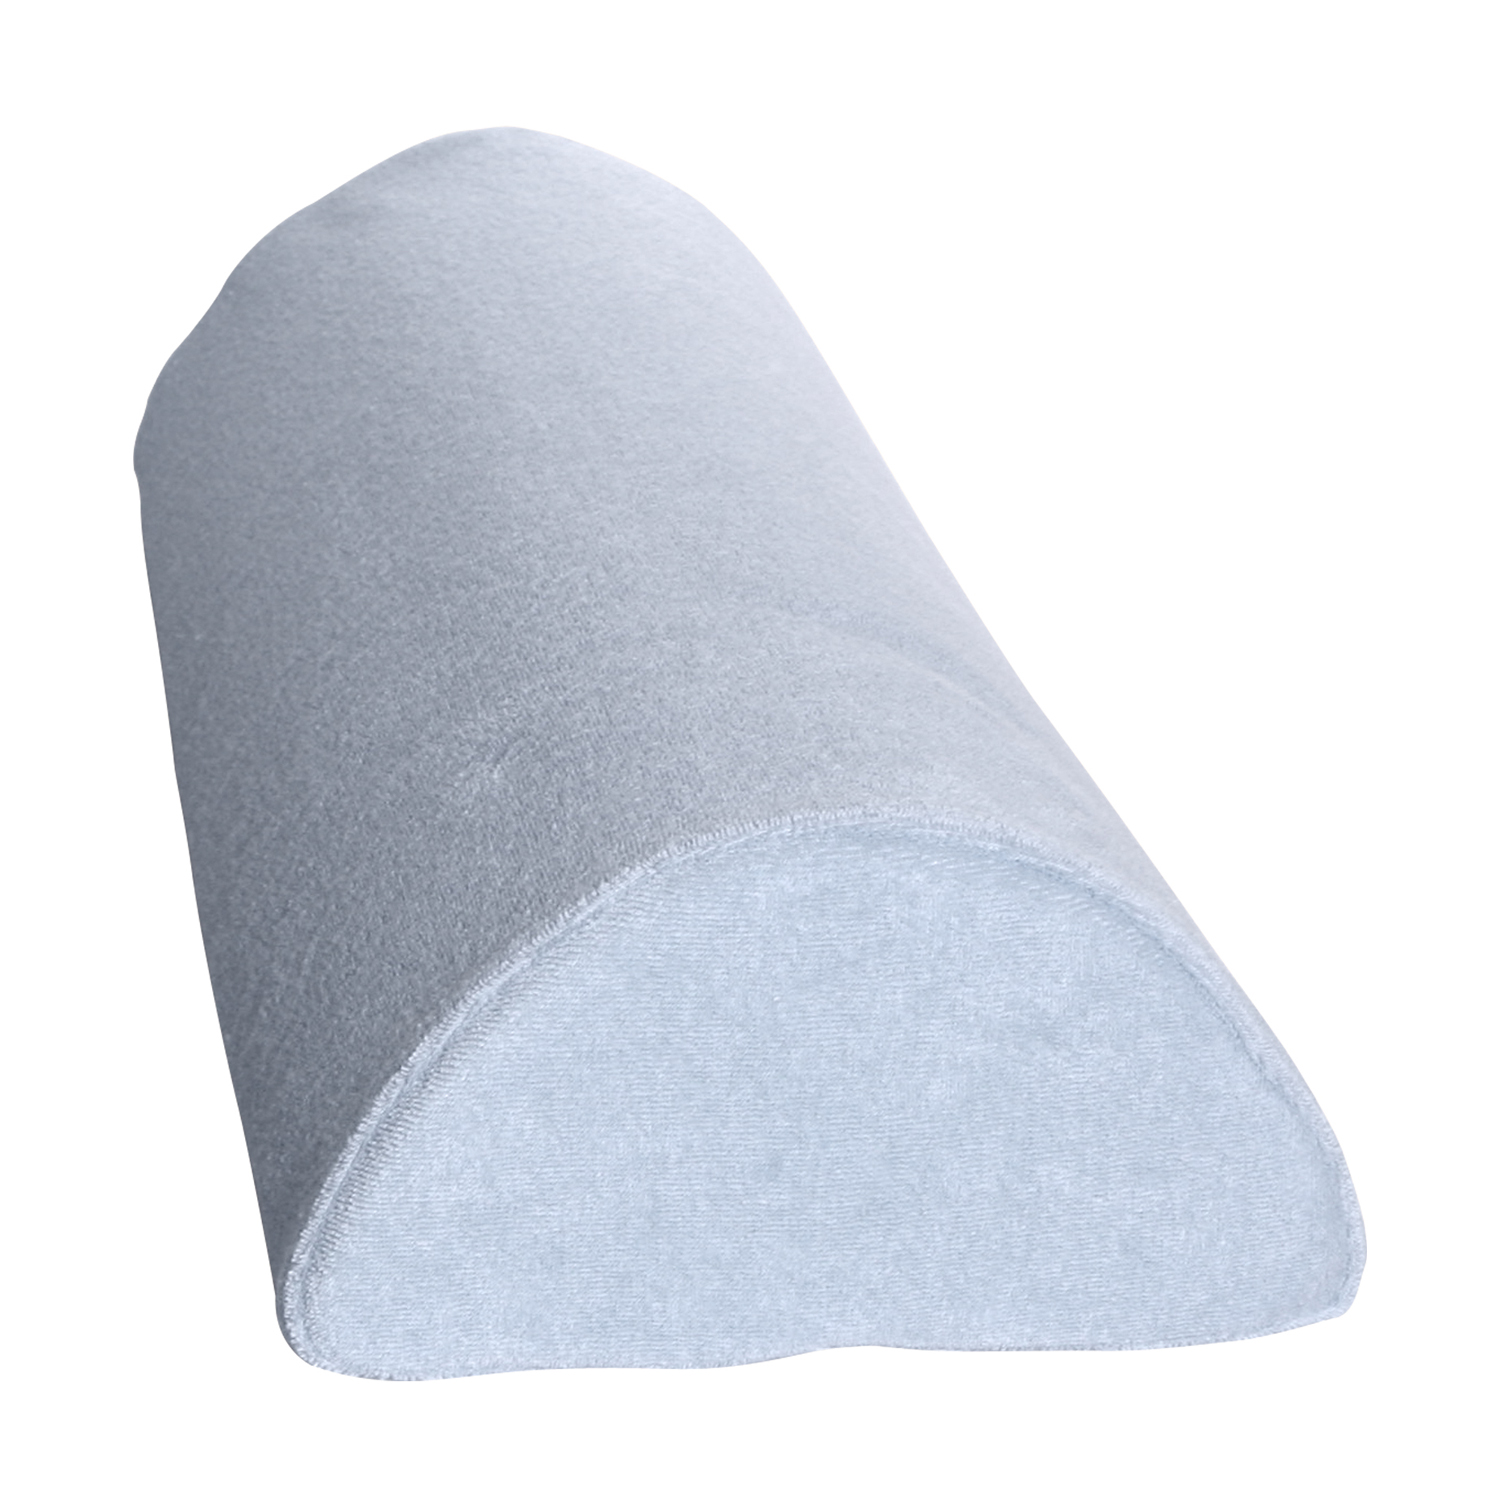 half moon half cylinder neck roll pillow best wedge cervical lumbar support back